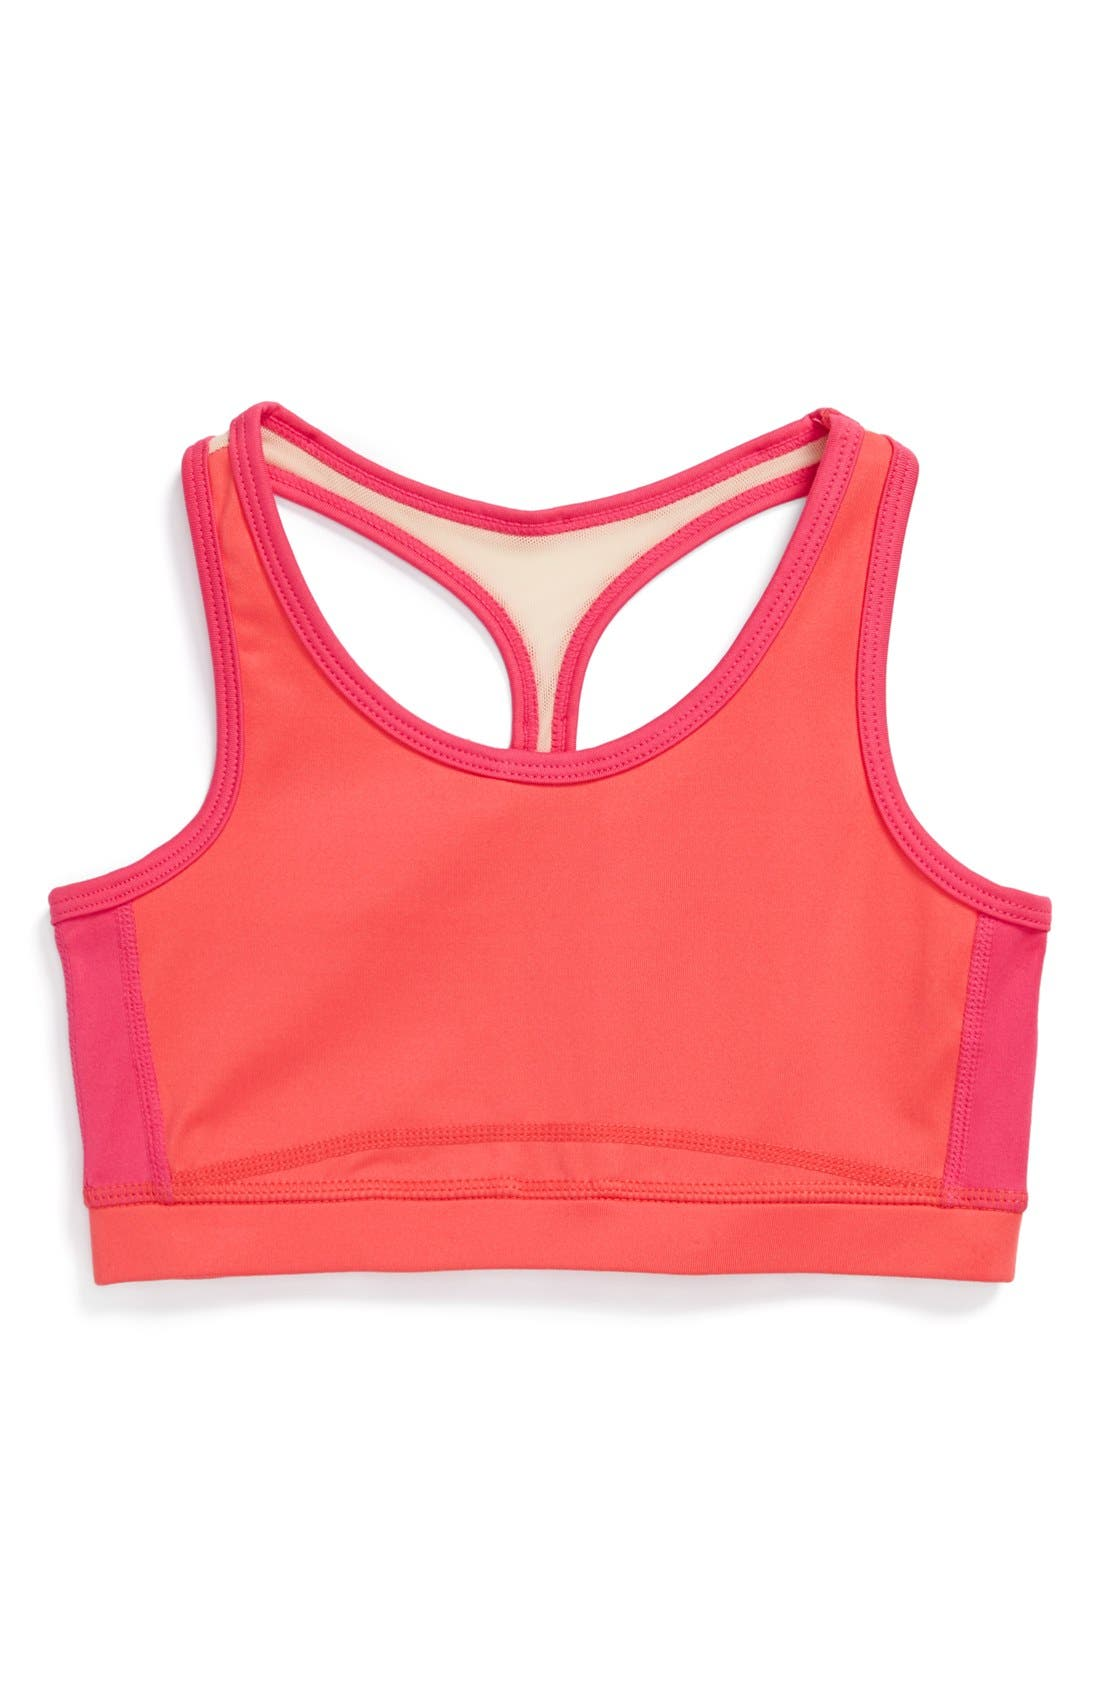 Alternate Image 1 Selected - Limeapple Racerback Sports Top (Little Girls & Big Girls)